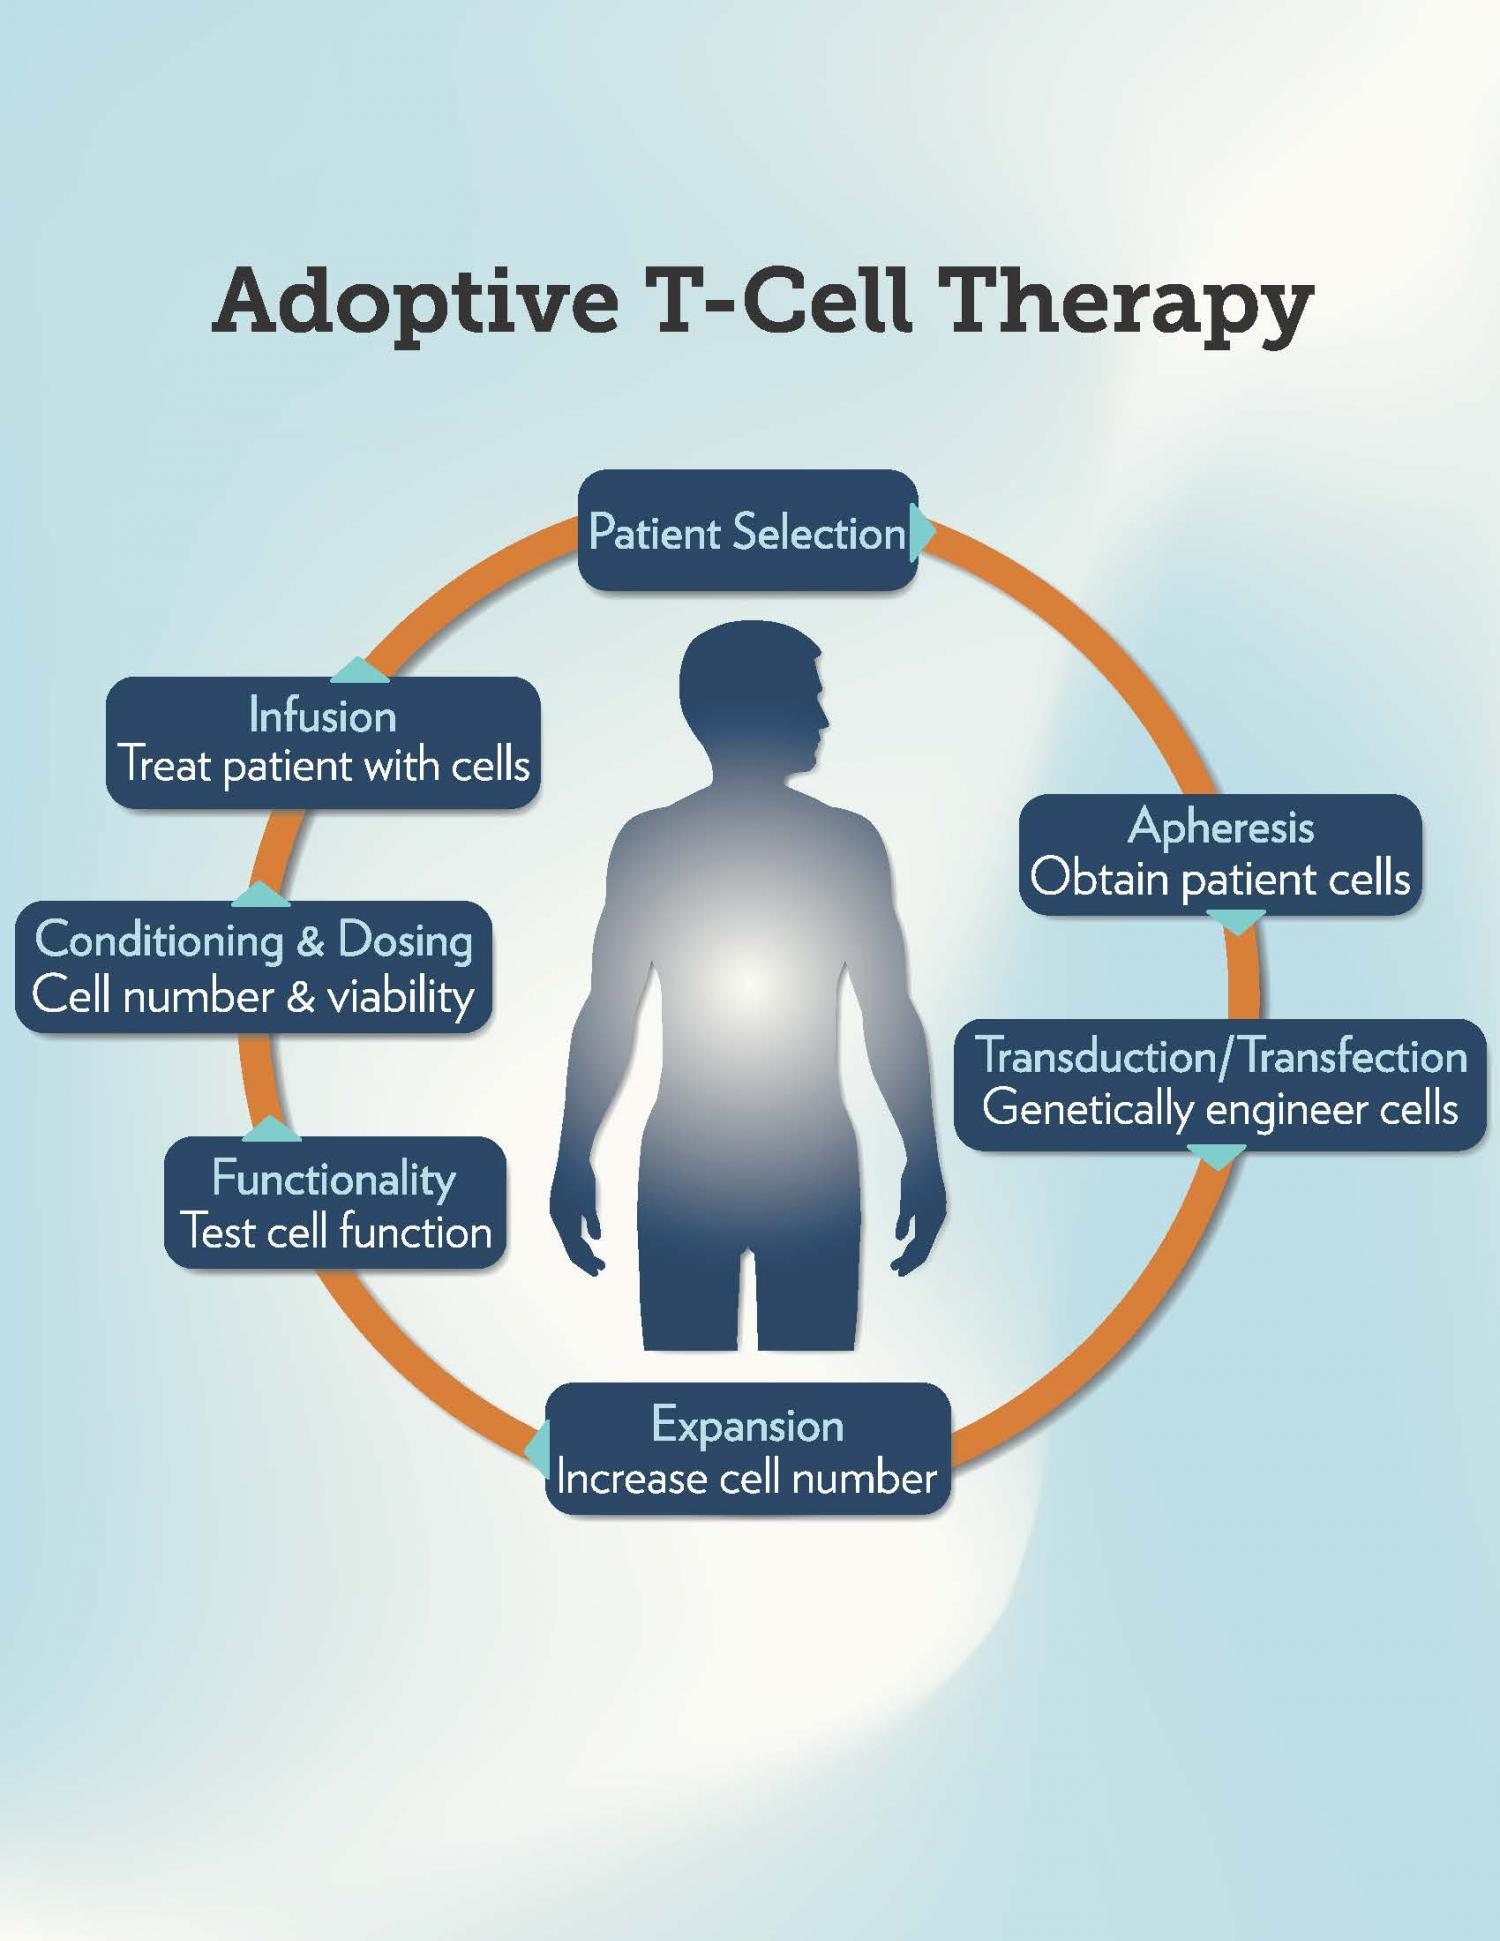 N Acetyl Cysteine Improves Efficacy Of Adoptive T Cell Immunotherapy Diagram Showing A The Steps In Therapy Credit Medical University South Carolina